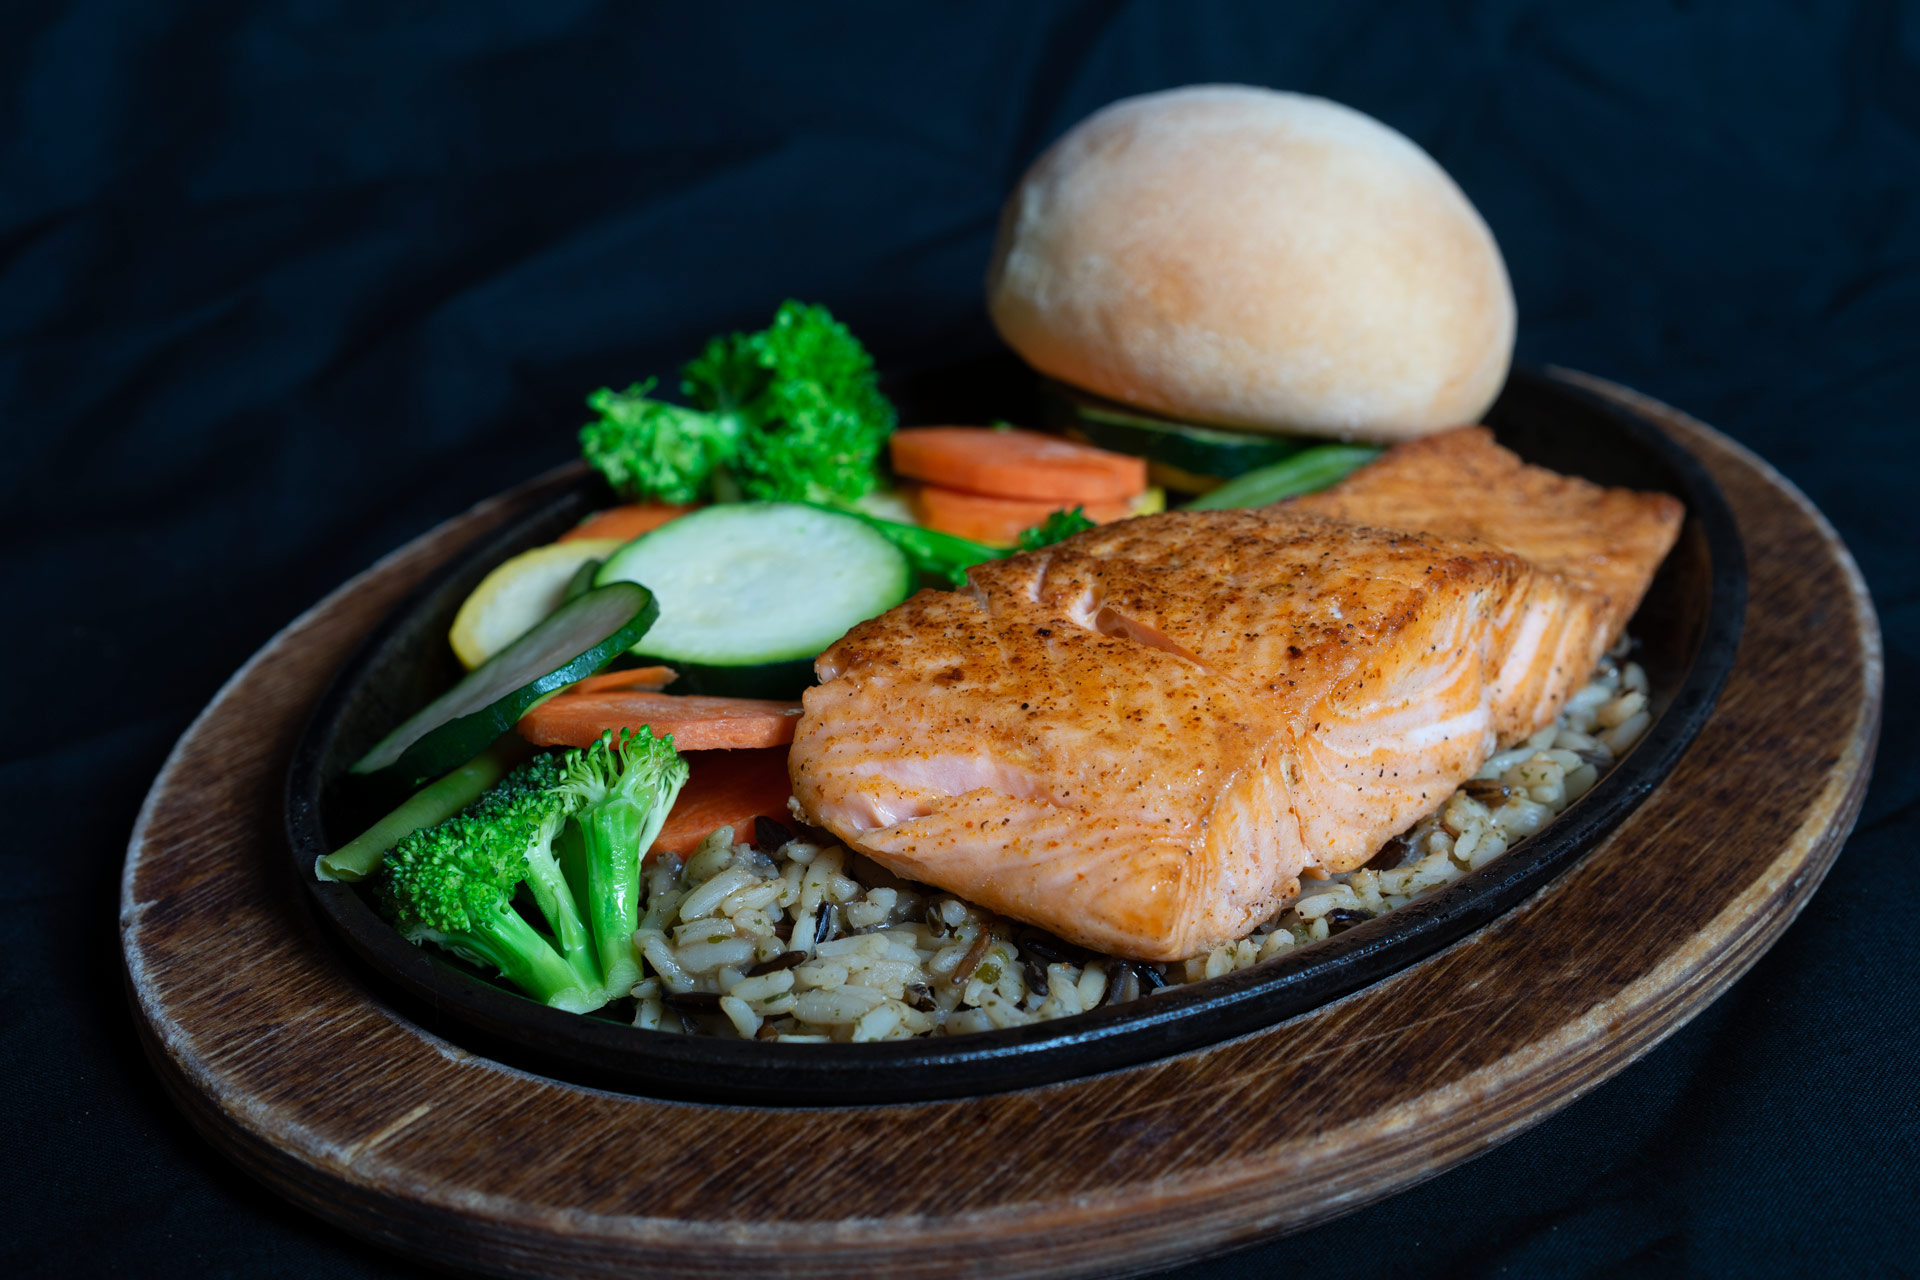 Grilled Atlantic Salmon 8 oz. serving of Norwegian Salmon seasoned, grilled and served over a bed of wild rice. Accompanied by your choice of steamed or grilled fresh vegetables and a house prepared yeast roll. 15.00